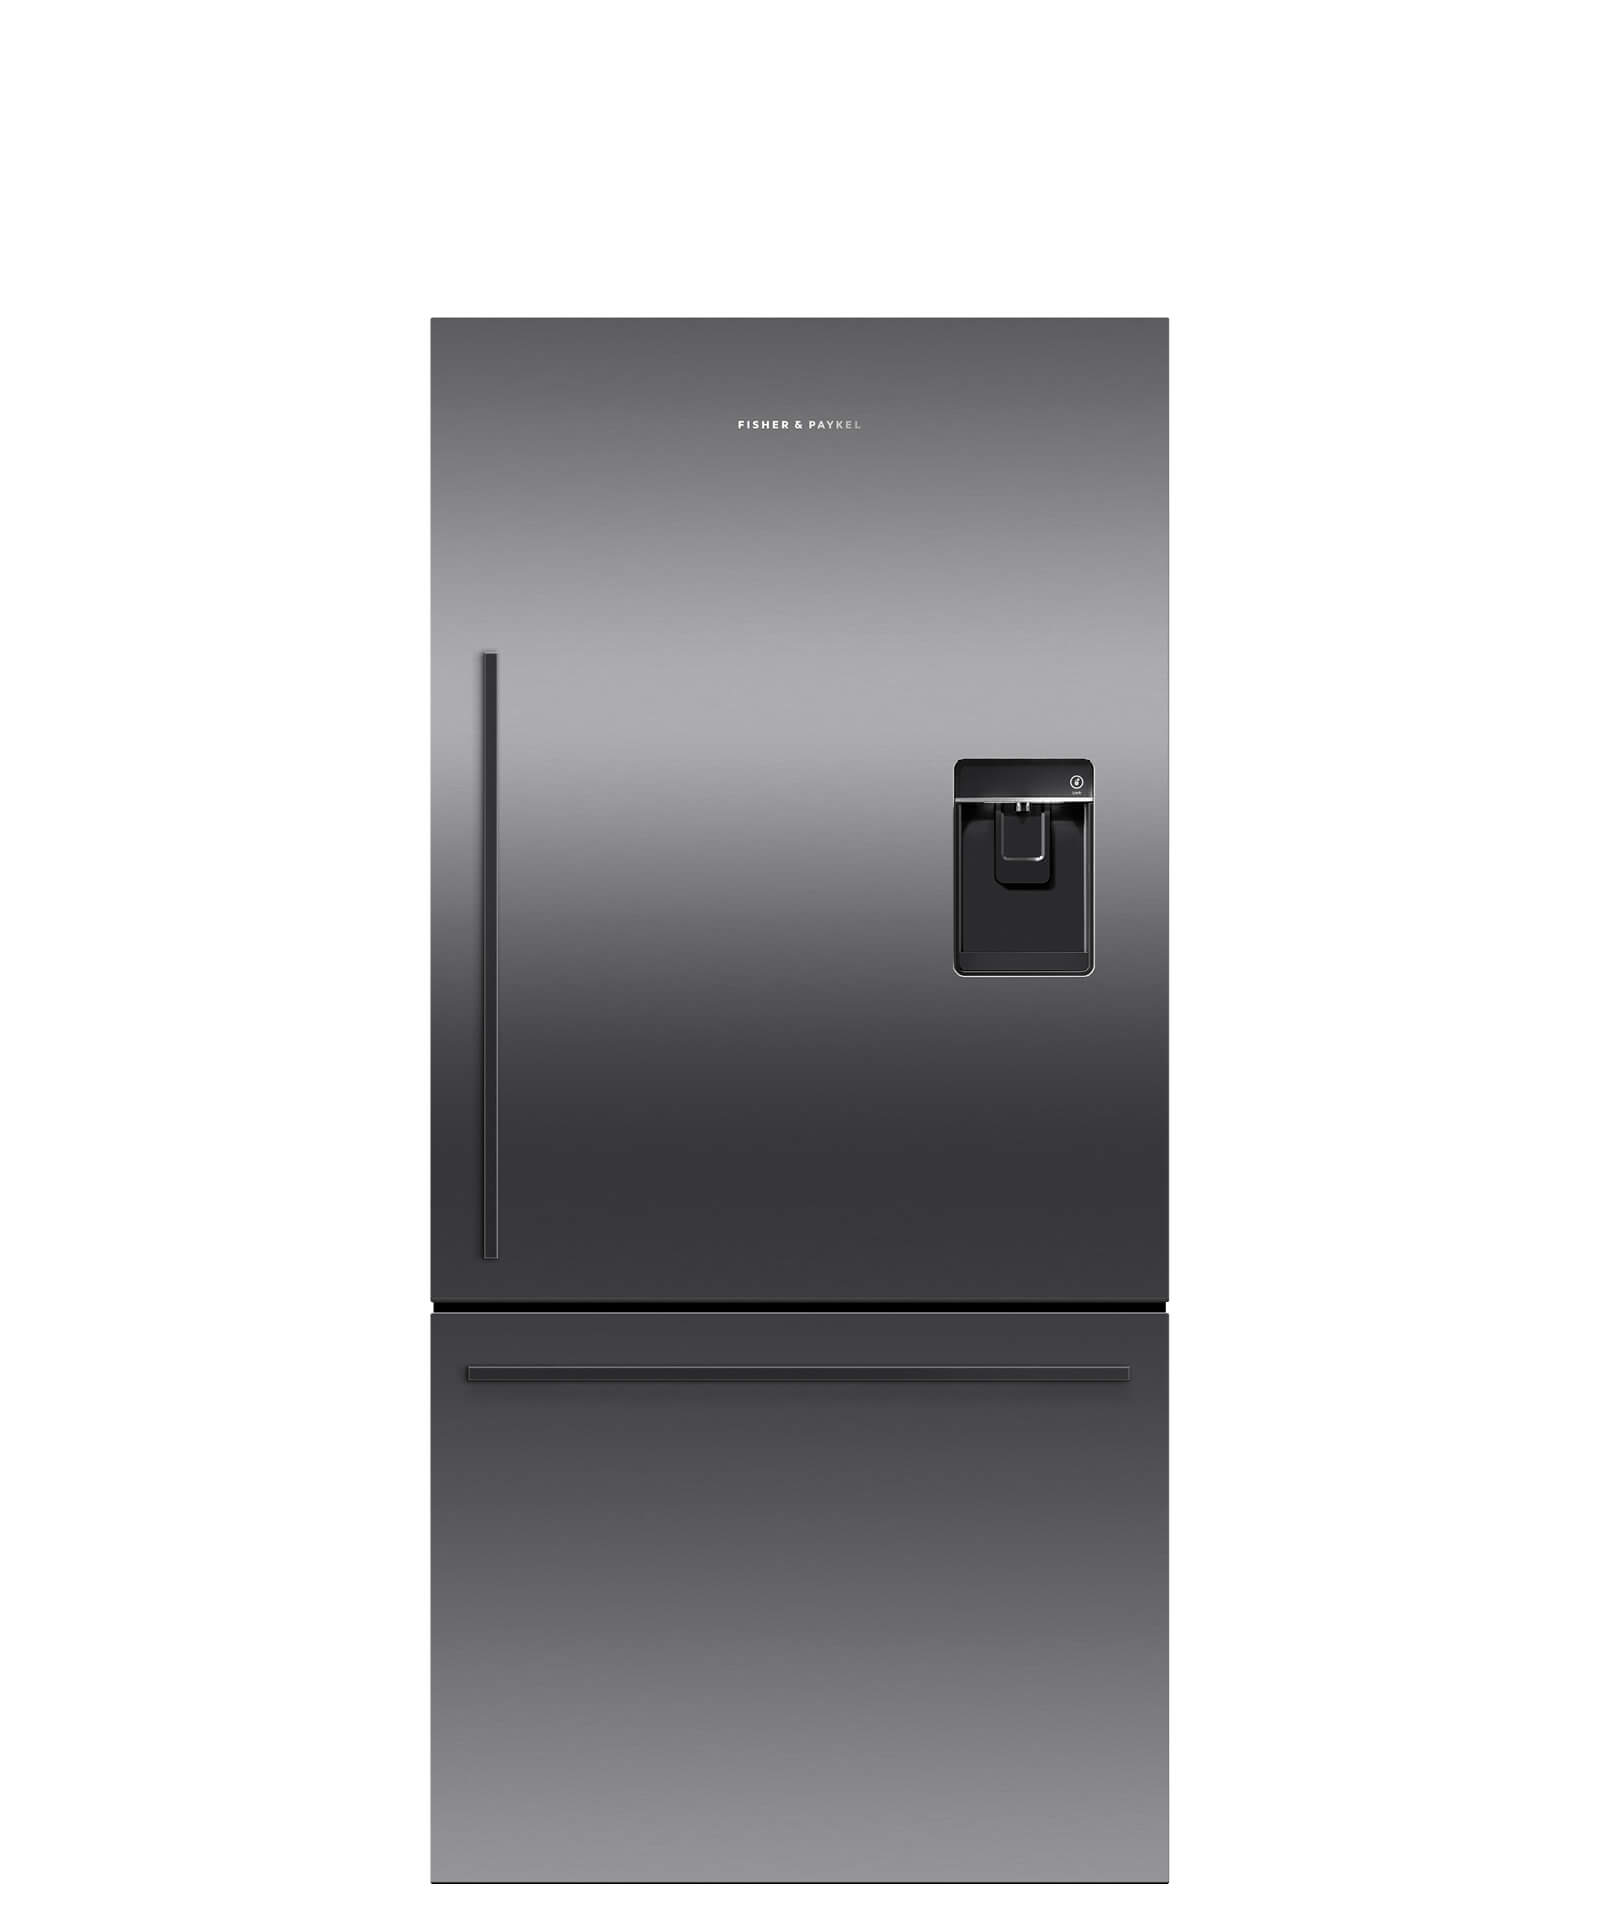 Black Stainless Steel Counter Depth Refrigerator 17 cu ft, Ice & Water